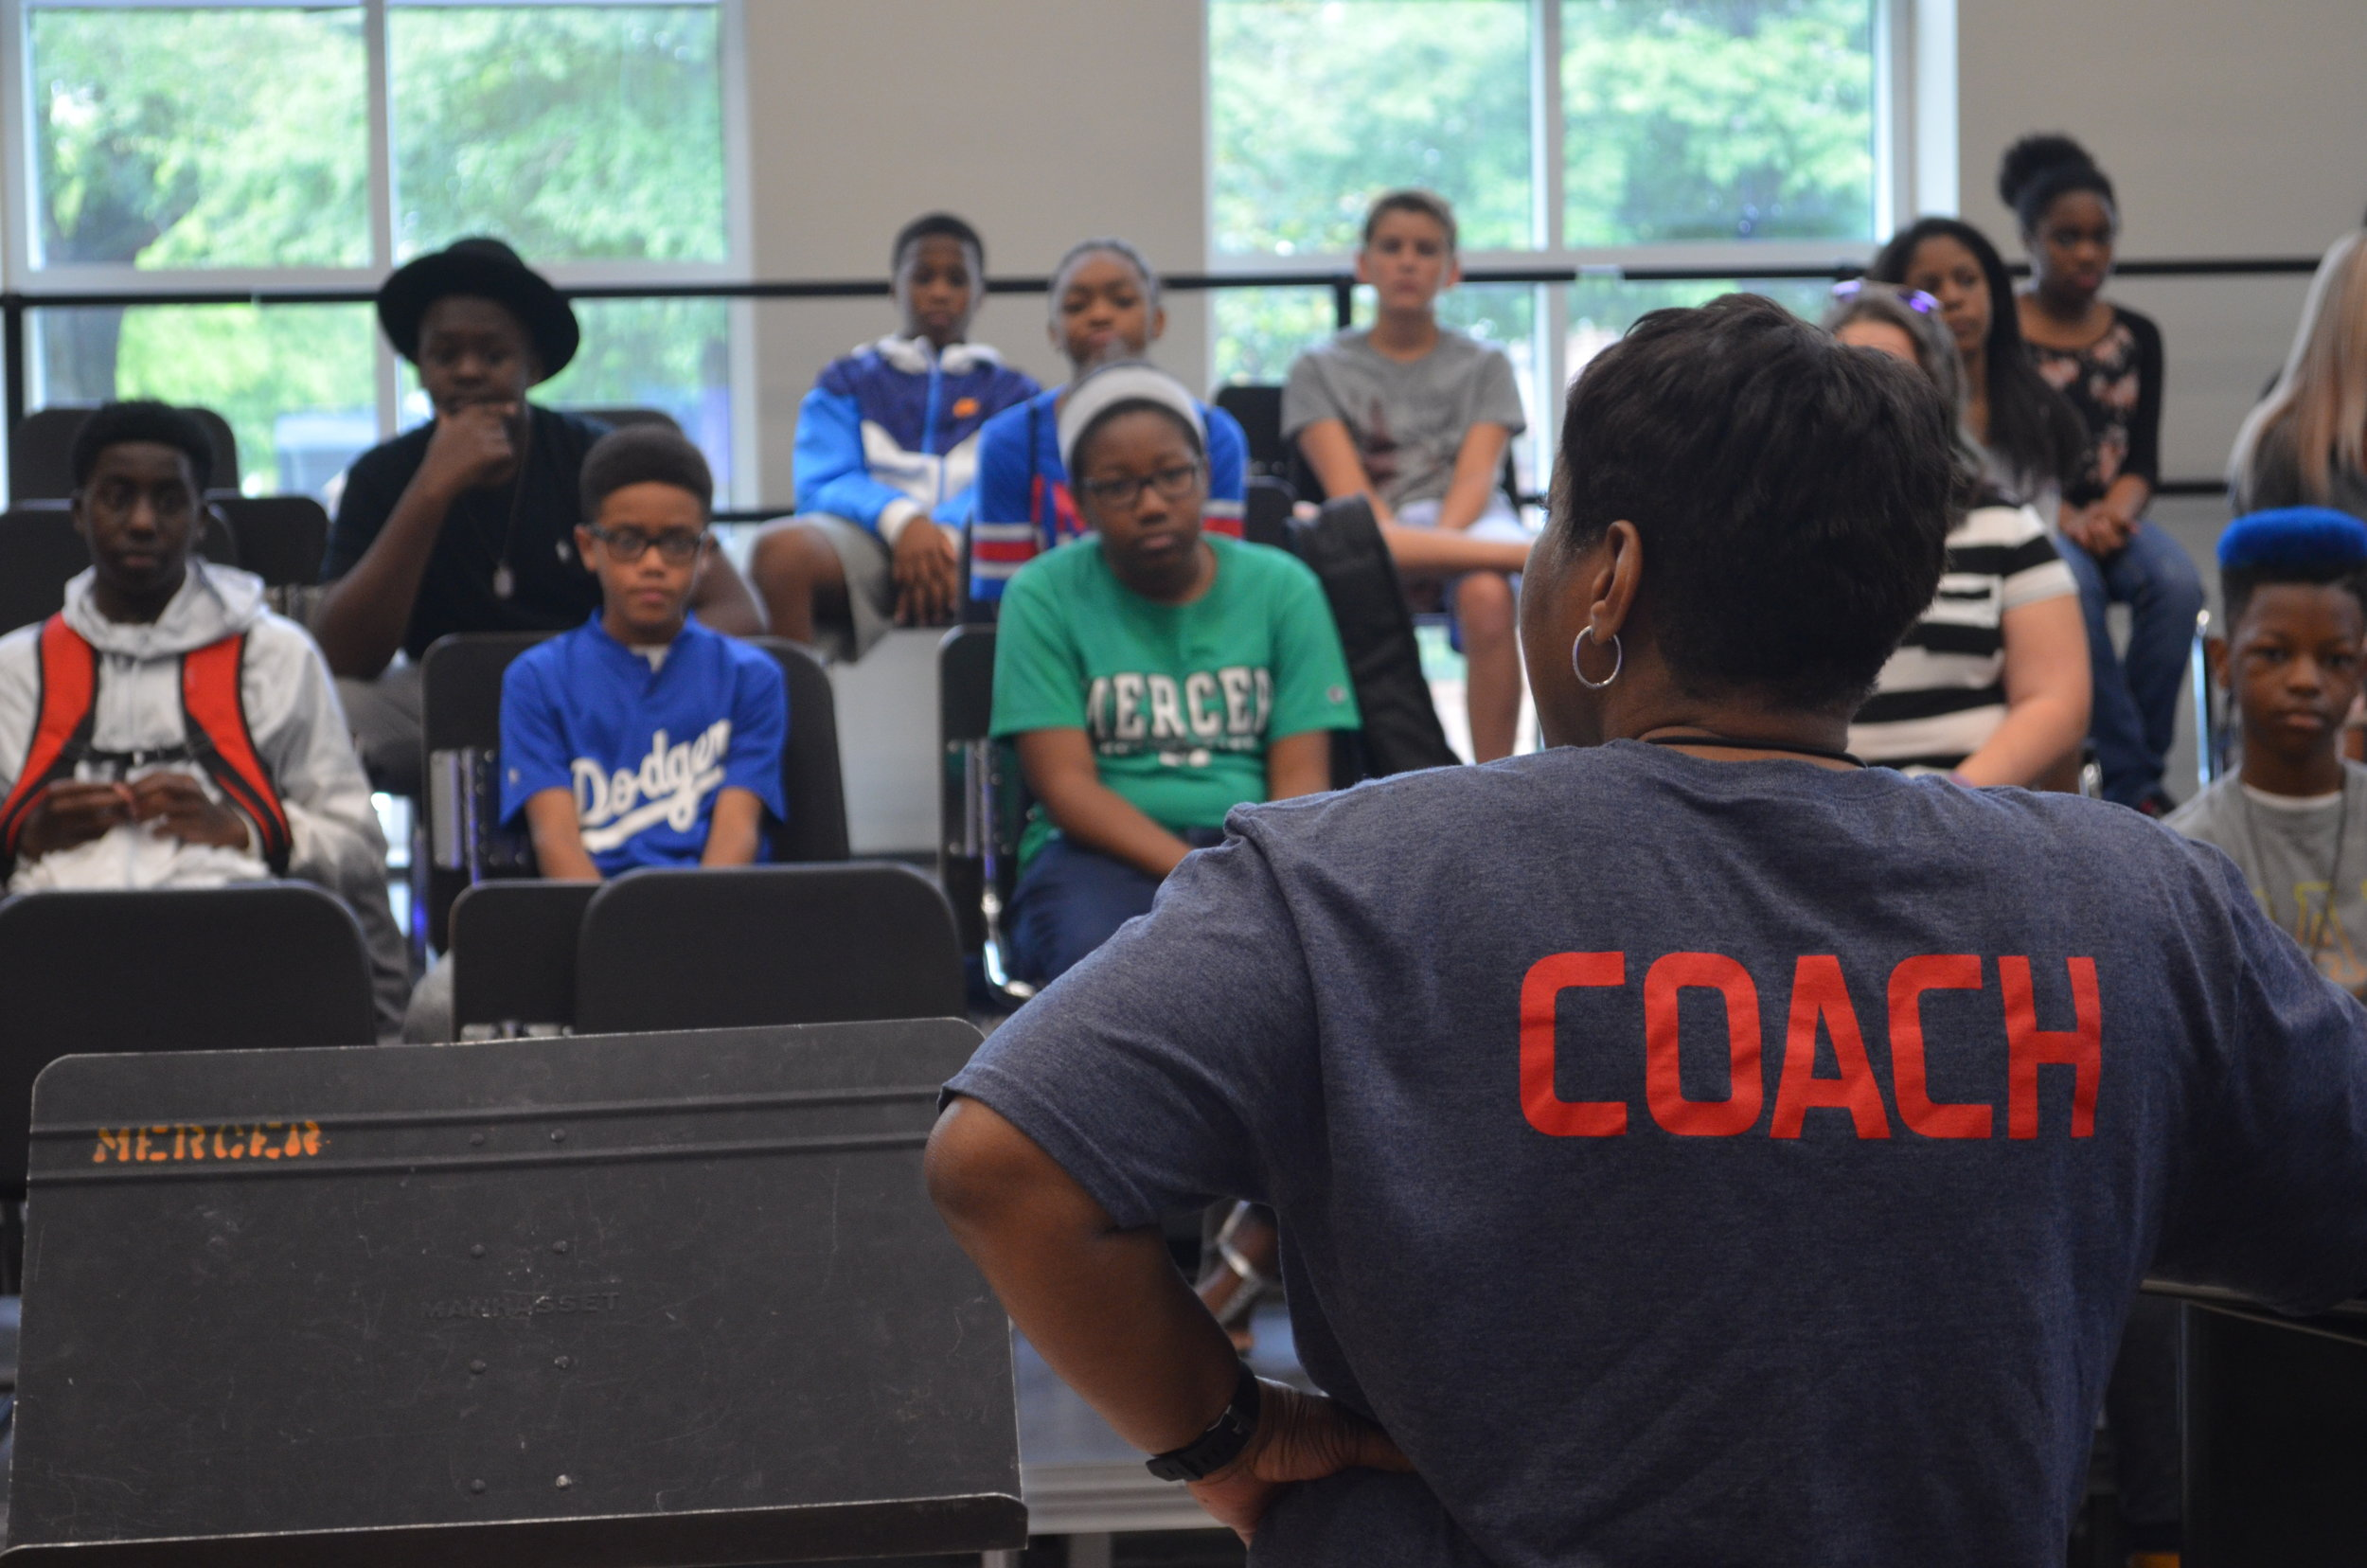 OMC Founder, Karla Redding-Andrews, introducing herself to the 2017 OMC campers on day one.